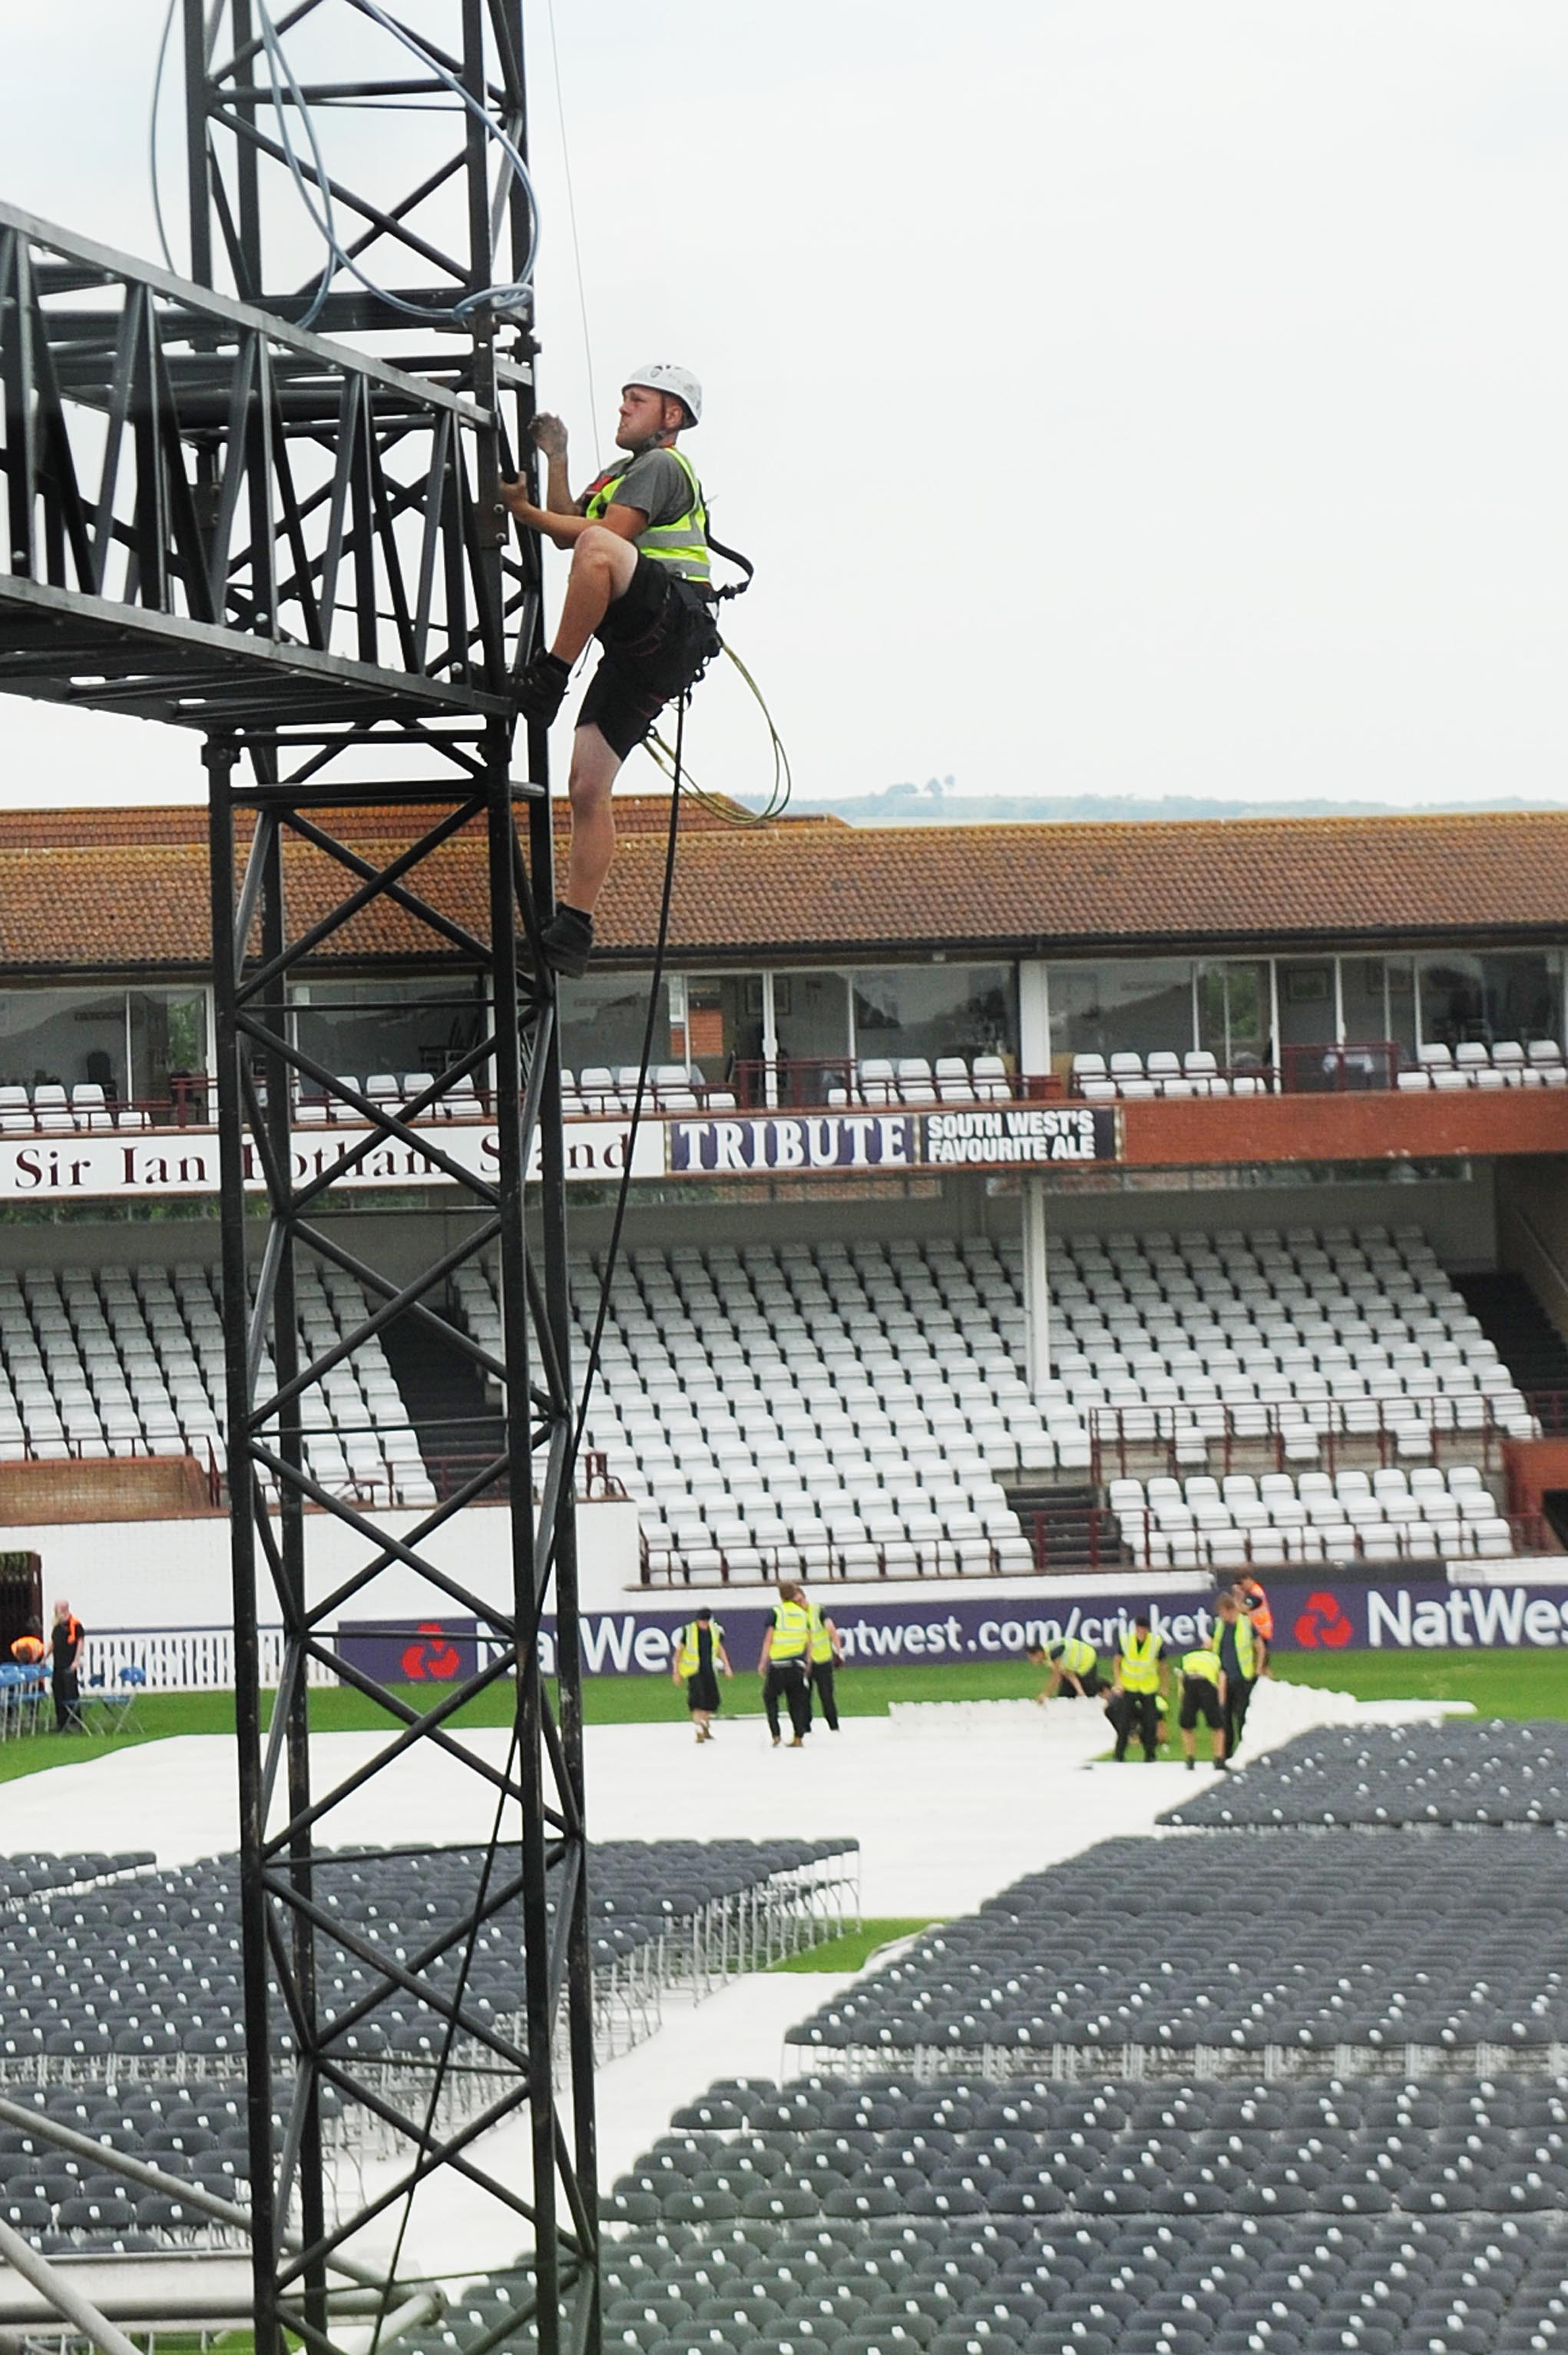 Preparations in full swing for Rod Stewart concert in Taunton - includes road closure details